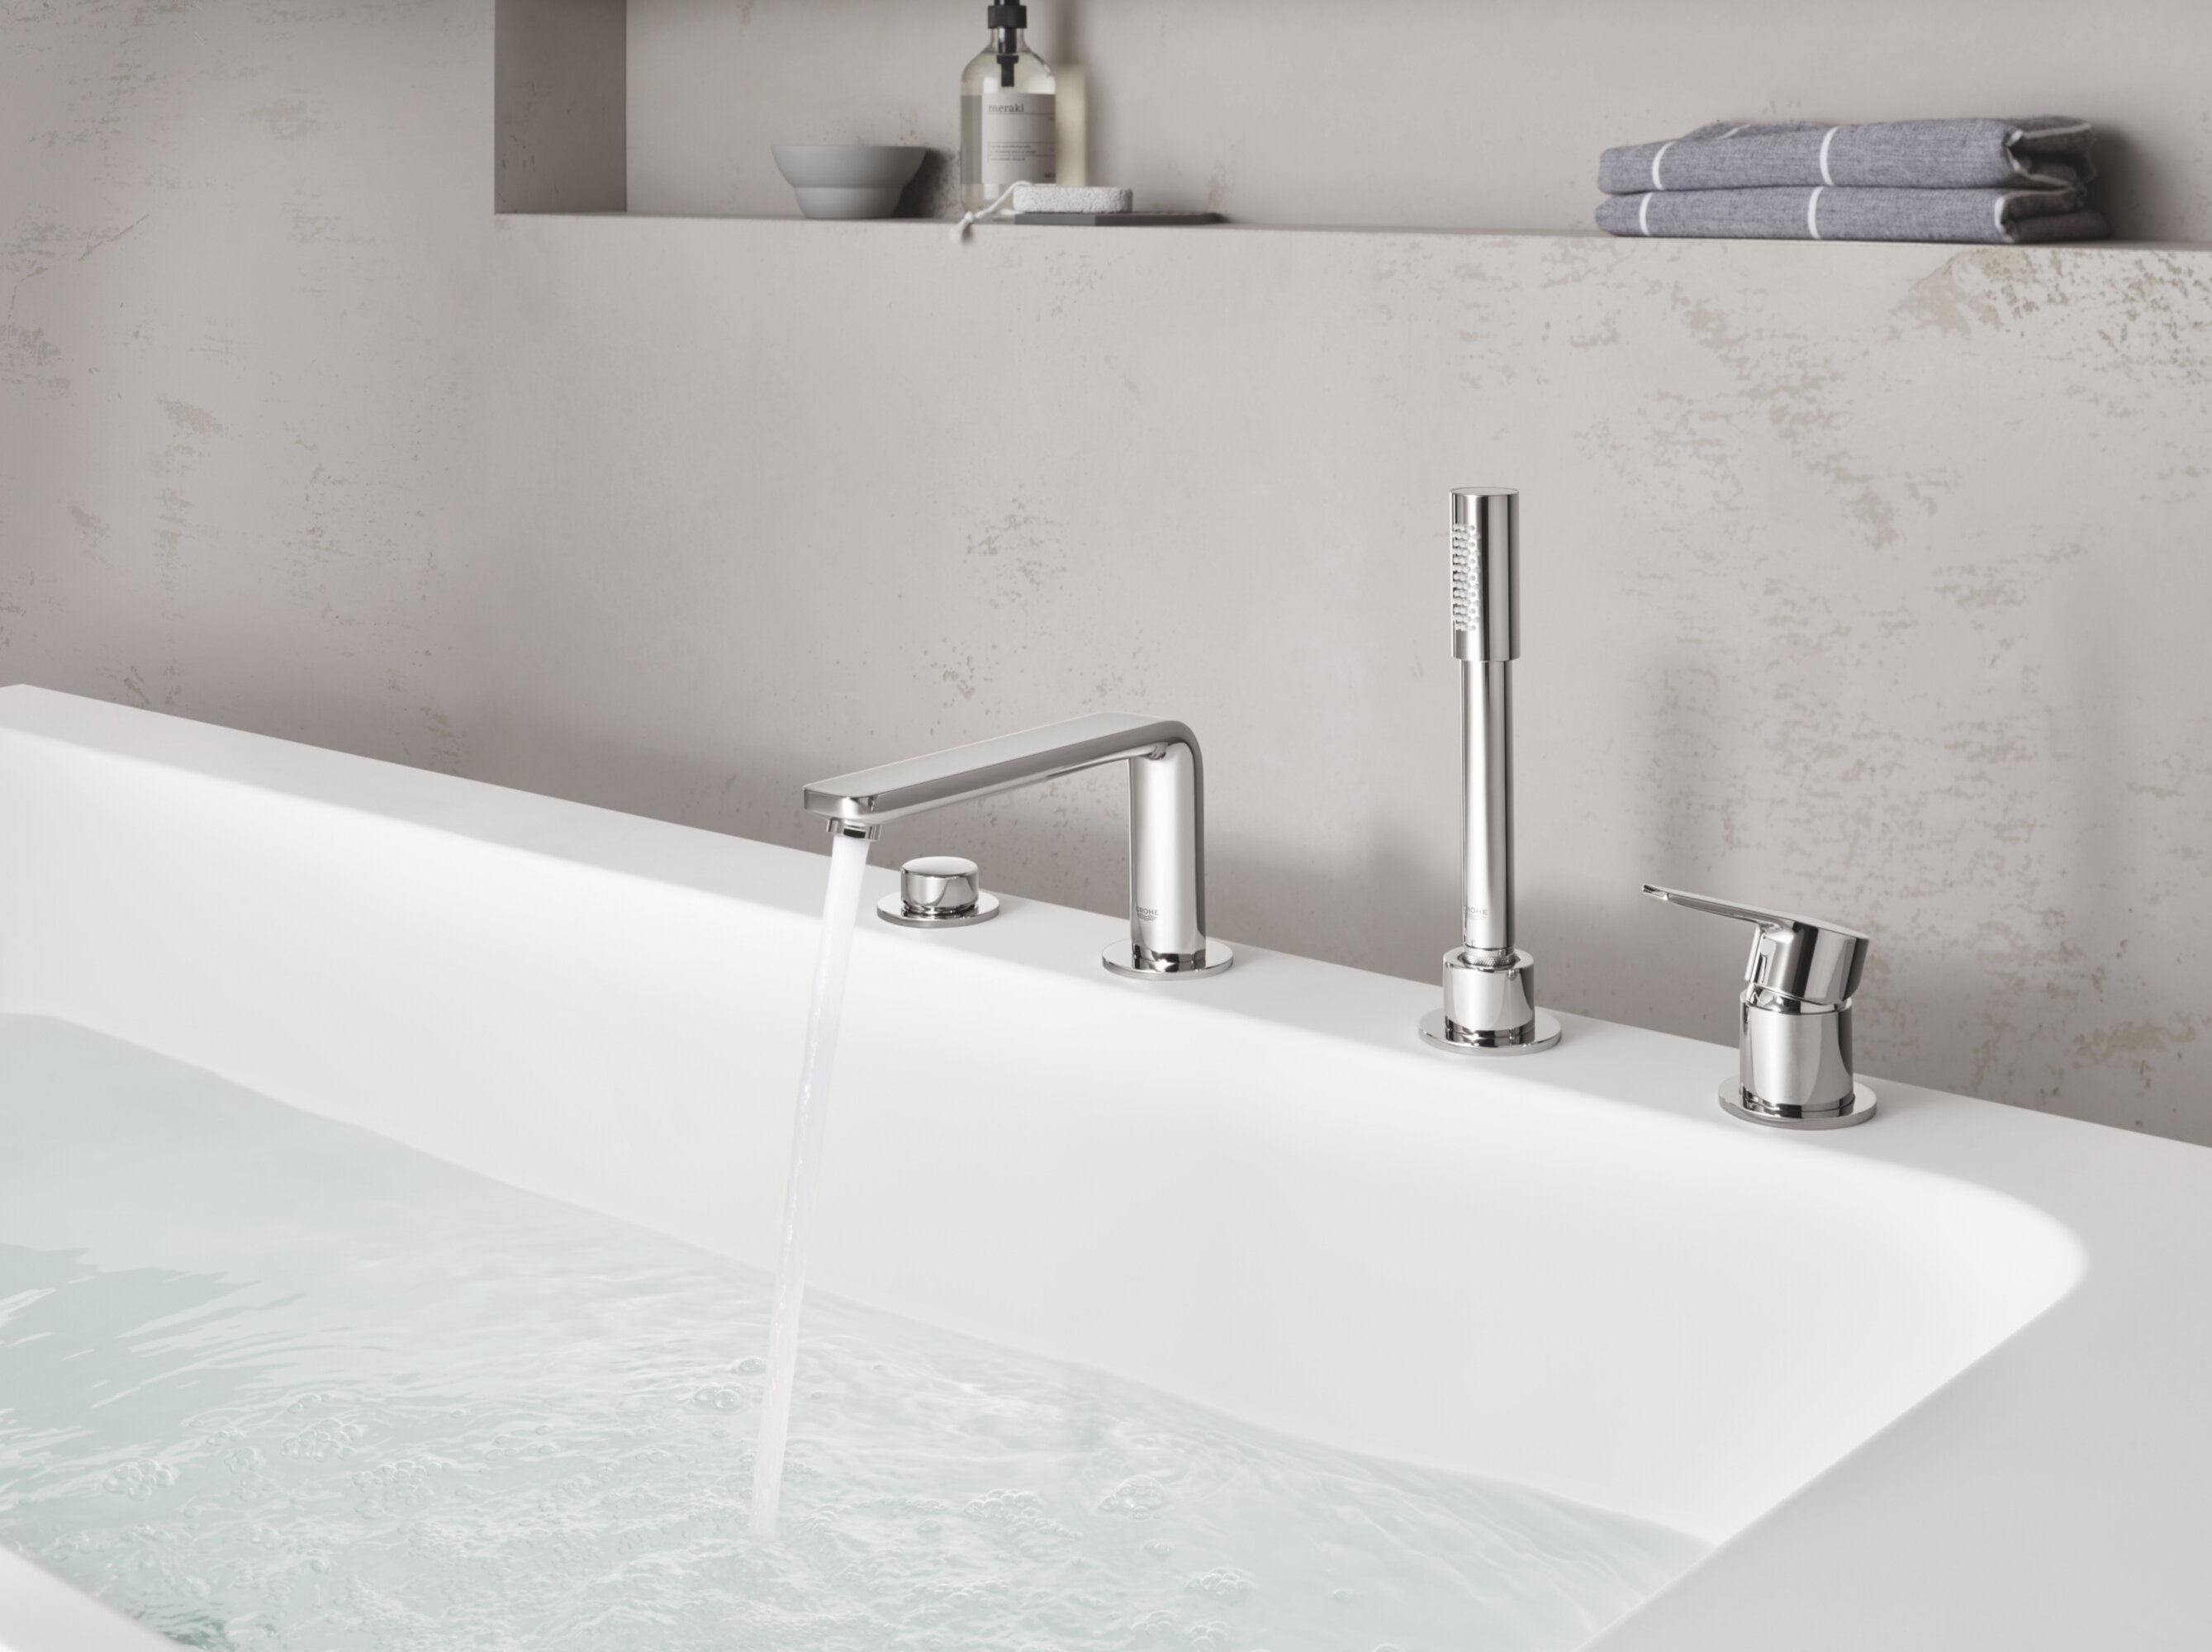 Grohe Lineare Double Handle Deck Mounted Roman Tub Faucet With Diverter And Handshower Wayfair